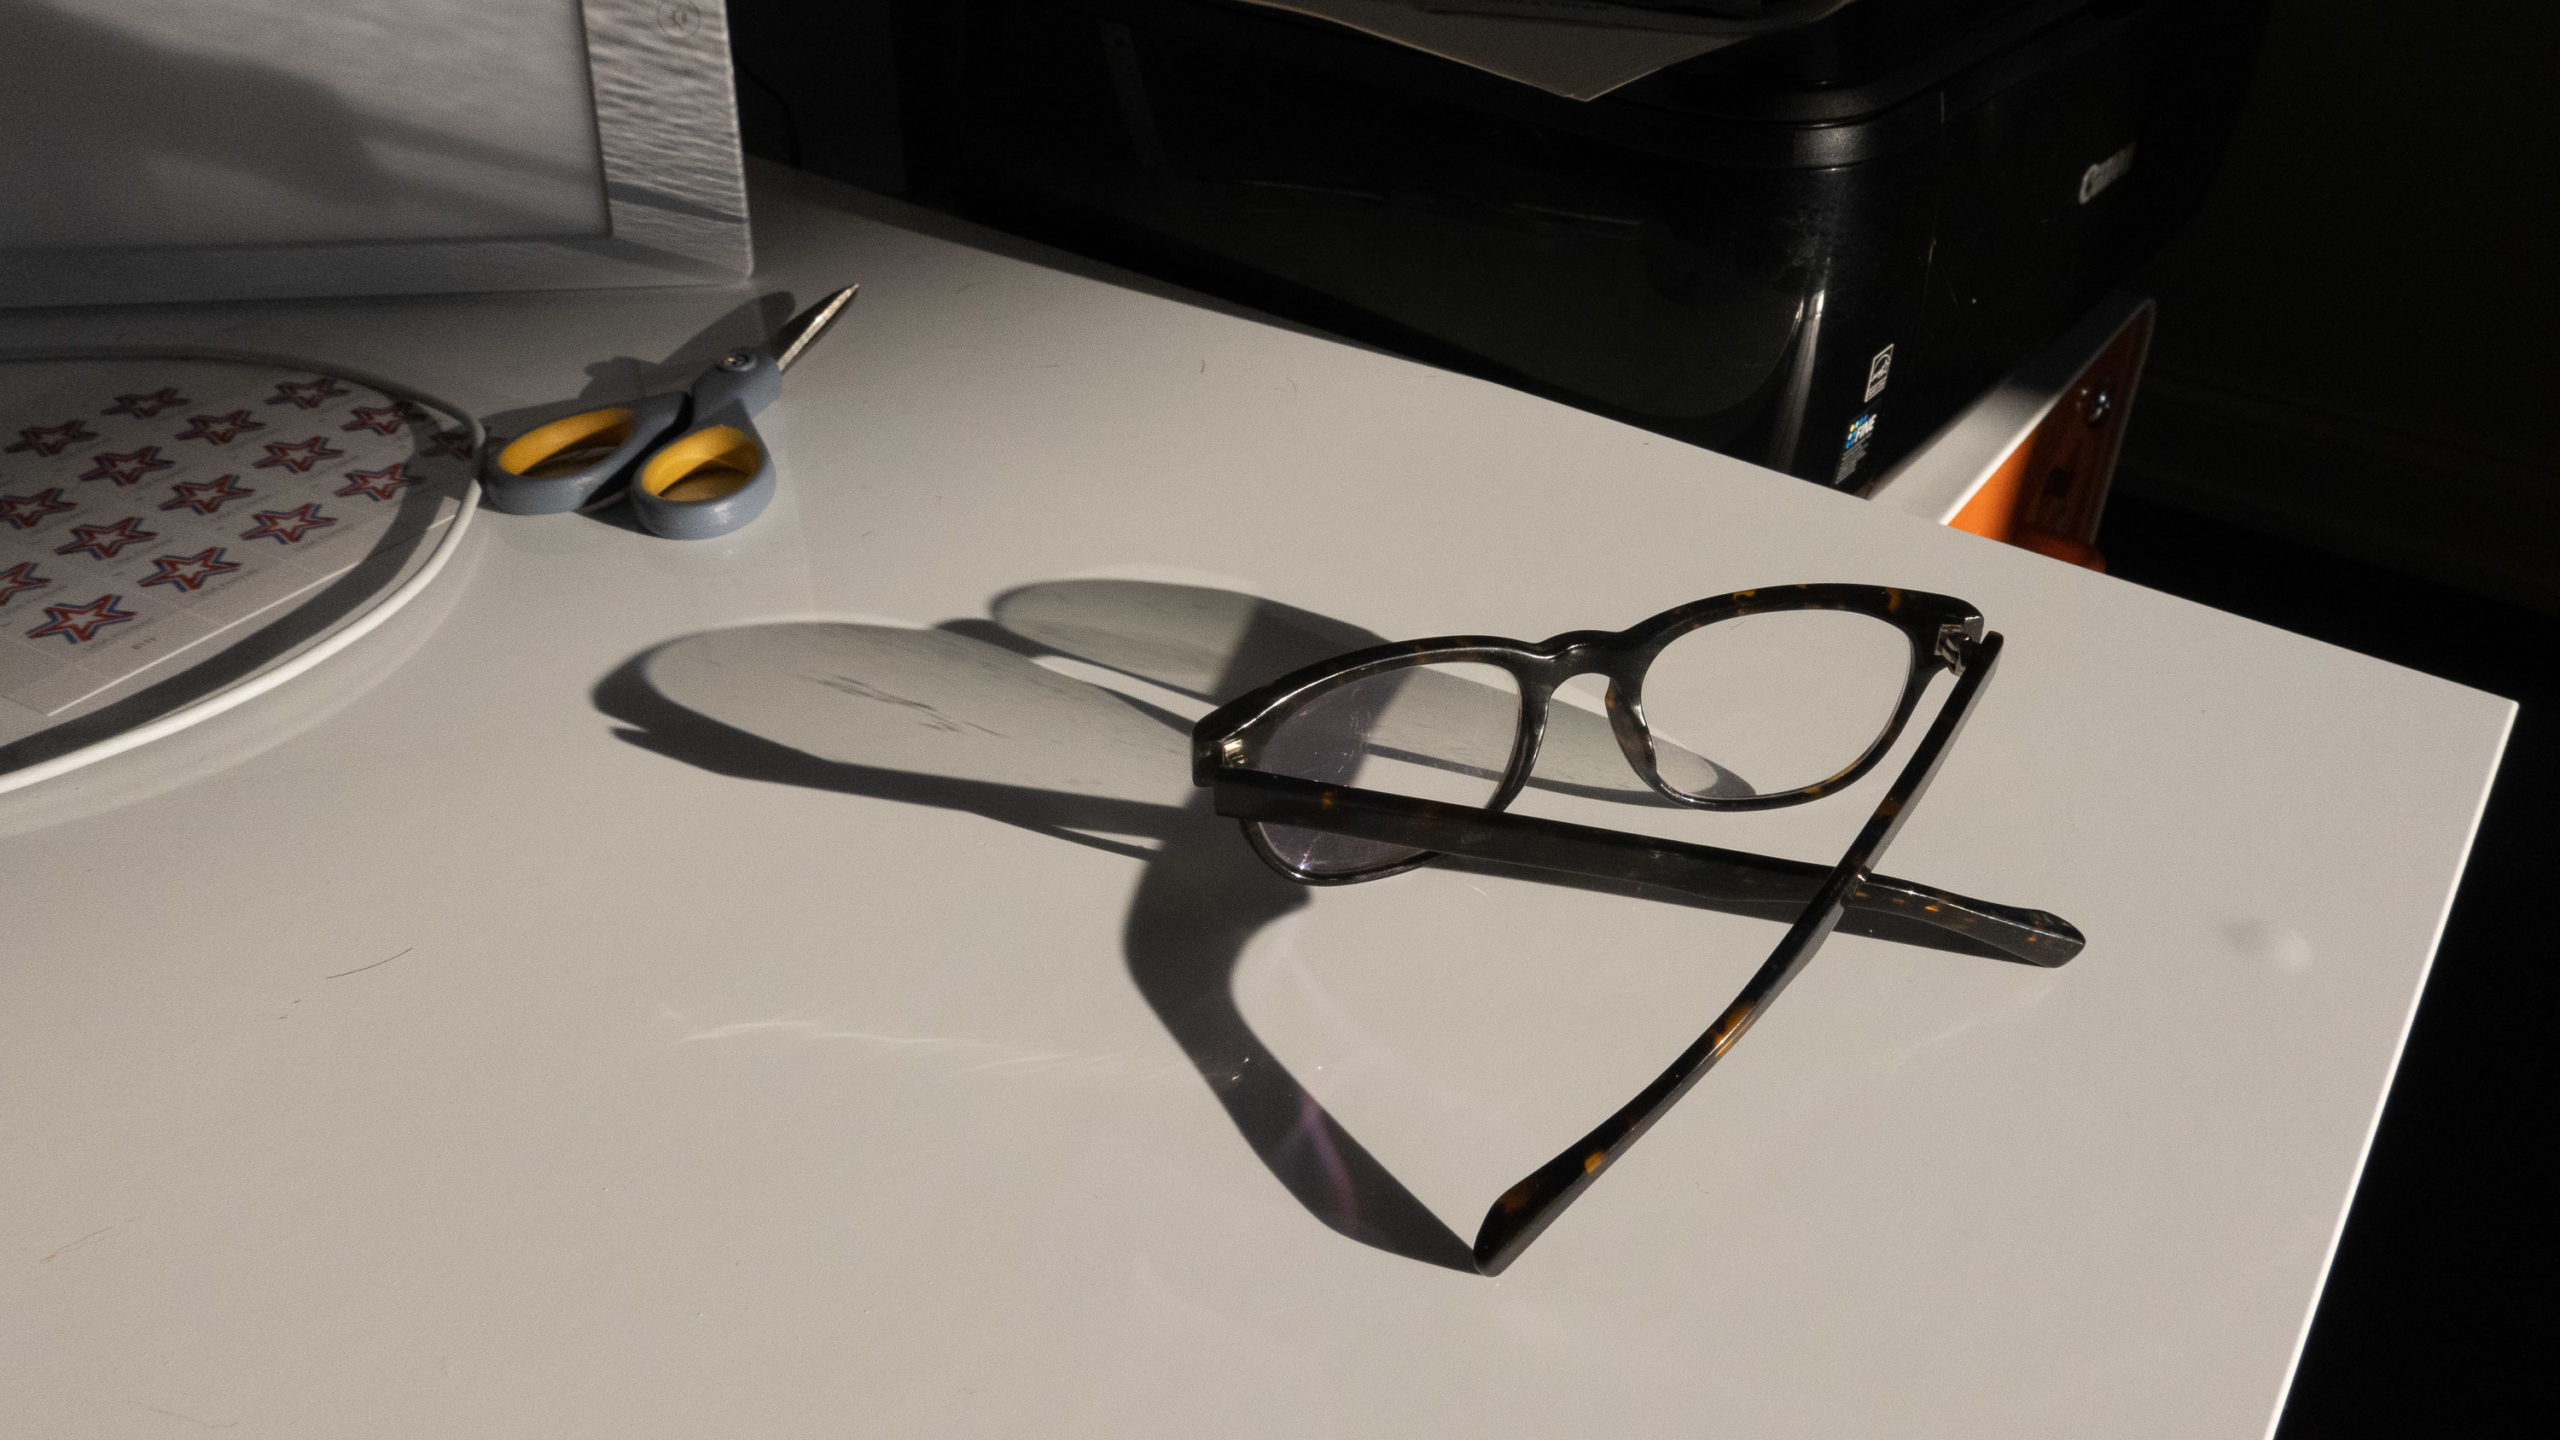 A pair of glasses on a white desk with a long shadow from evening light